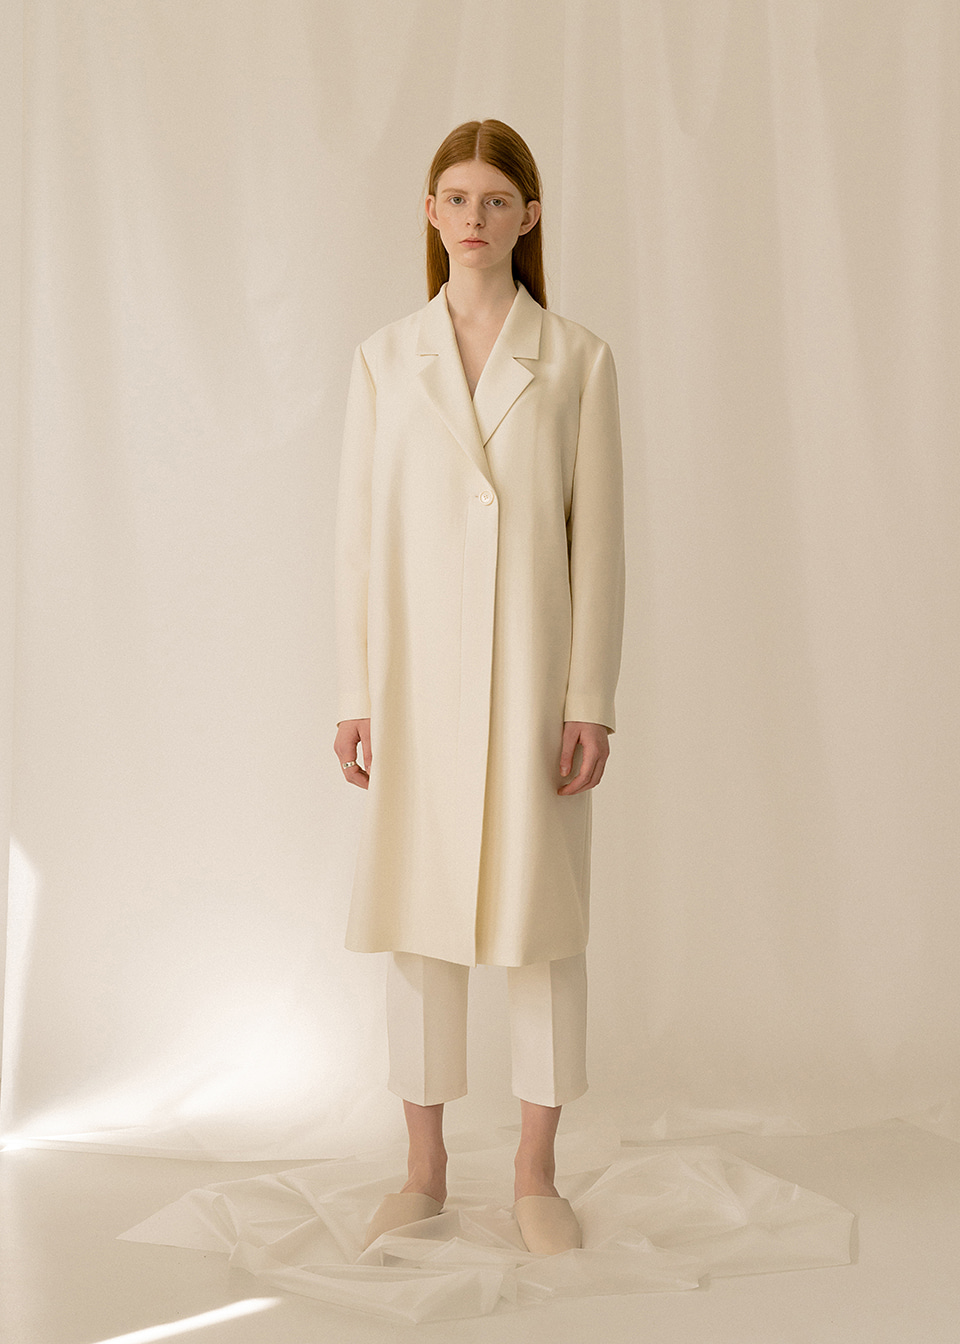 18 SS TAILORED COAT IV